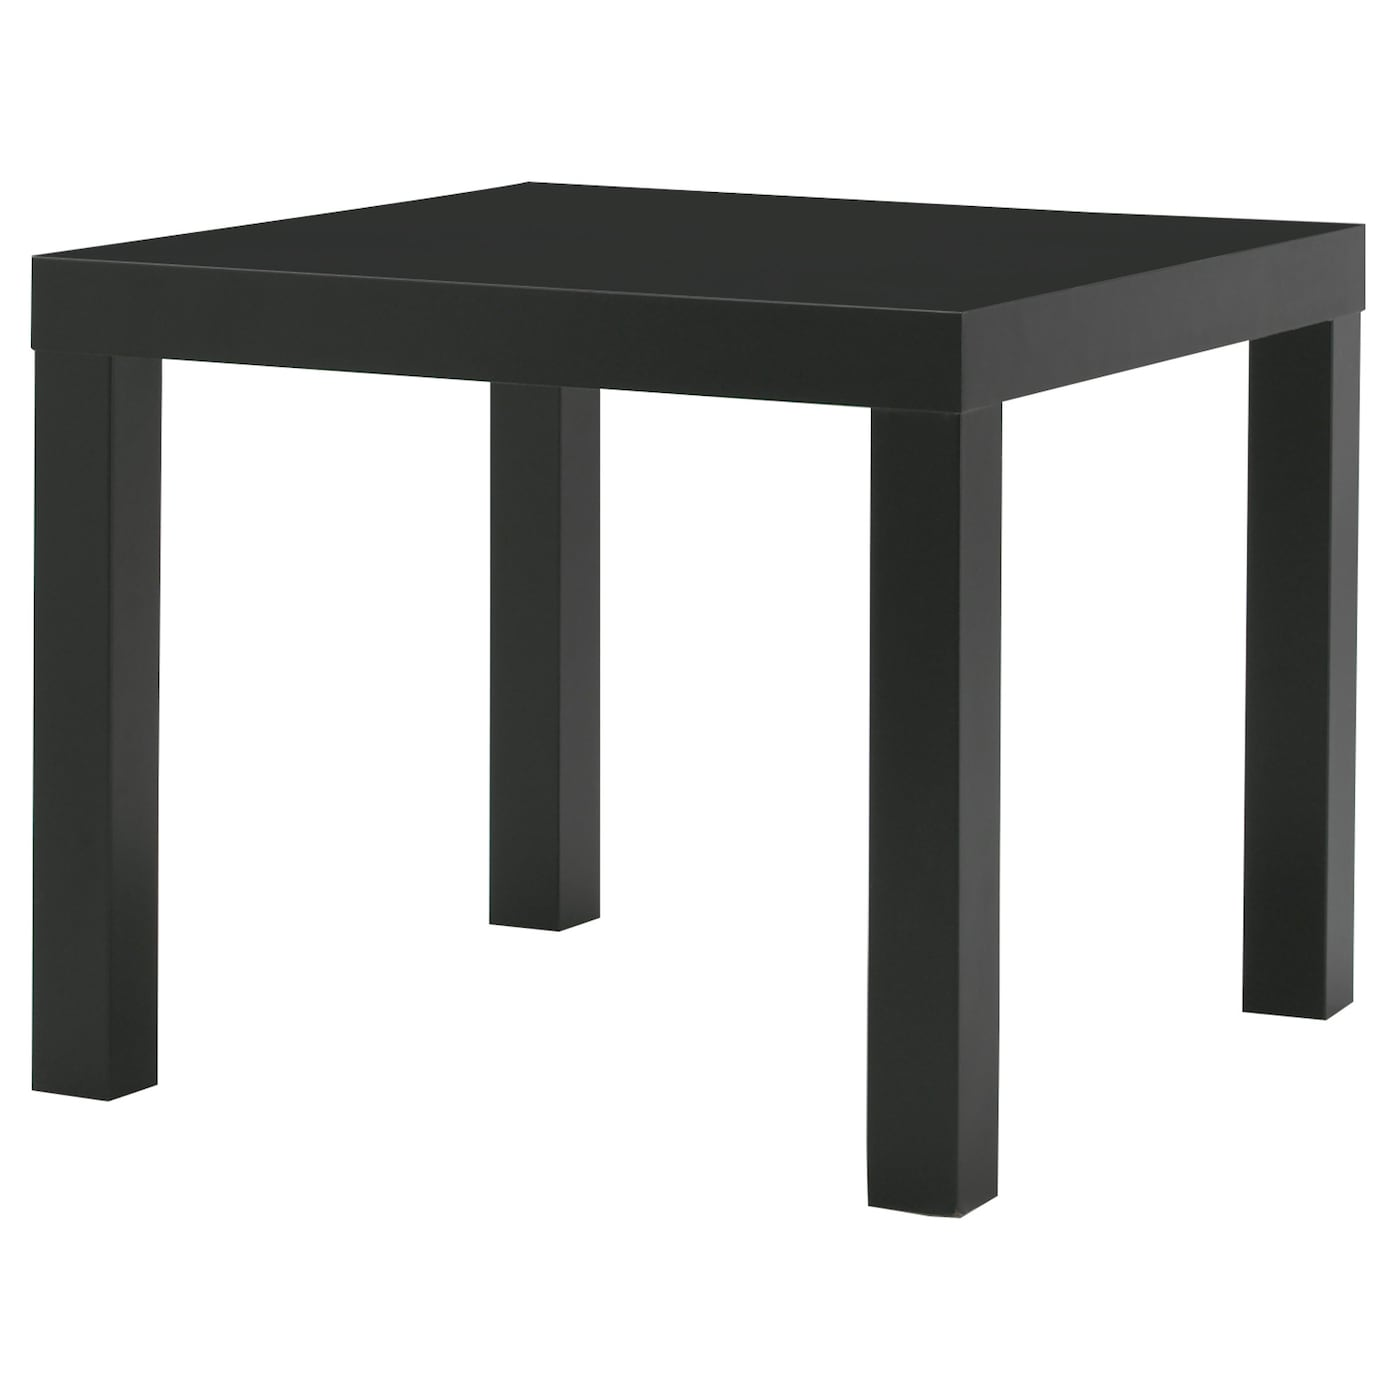 Lack side table black 55x55 cm ikea for Table de fusion ikea